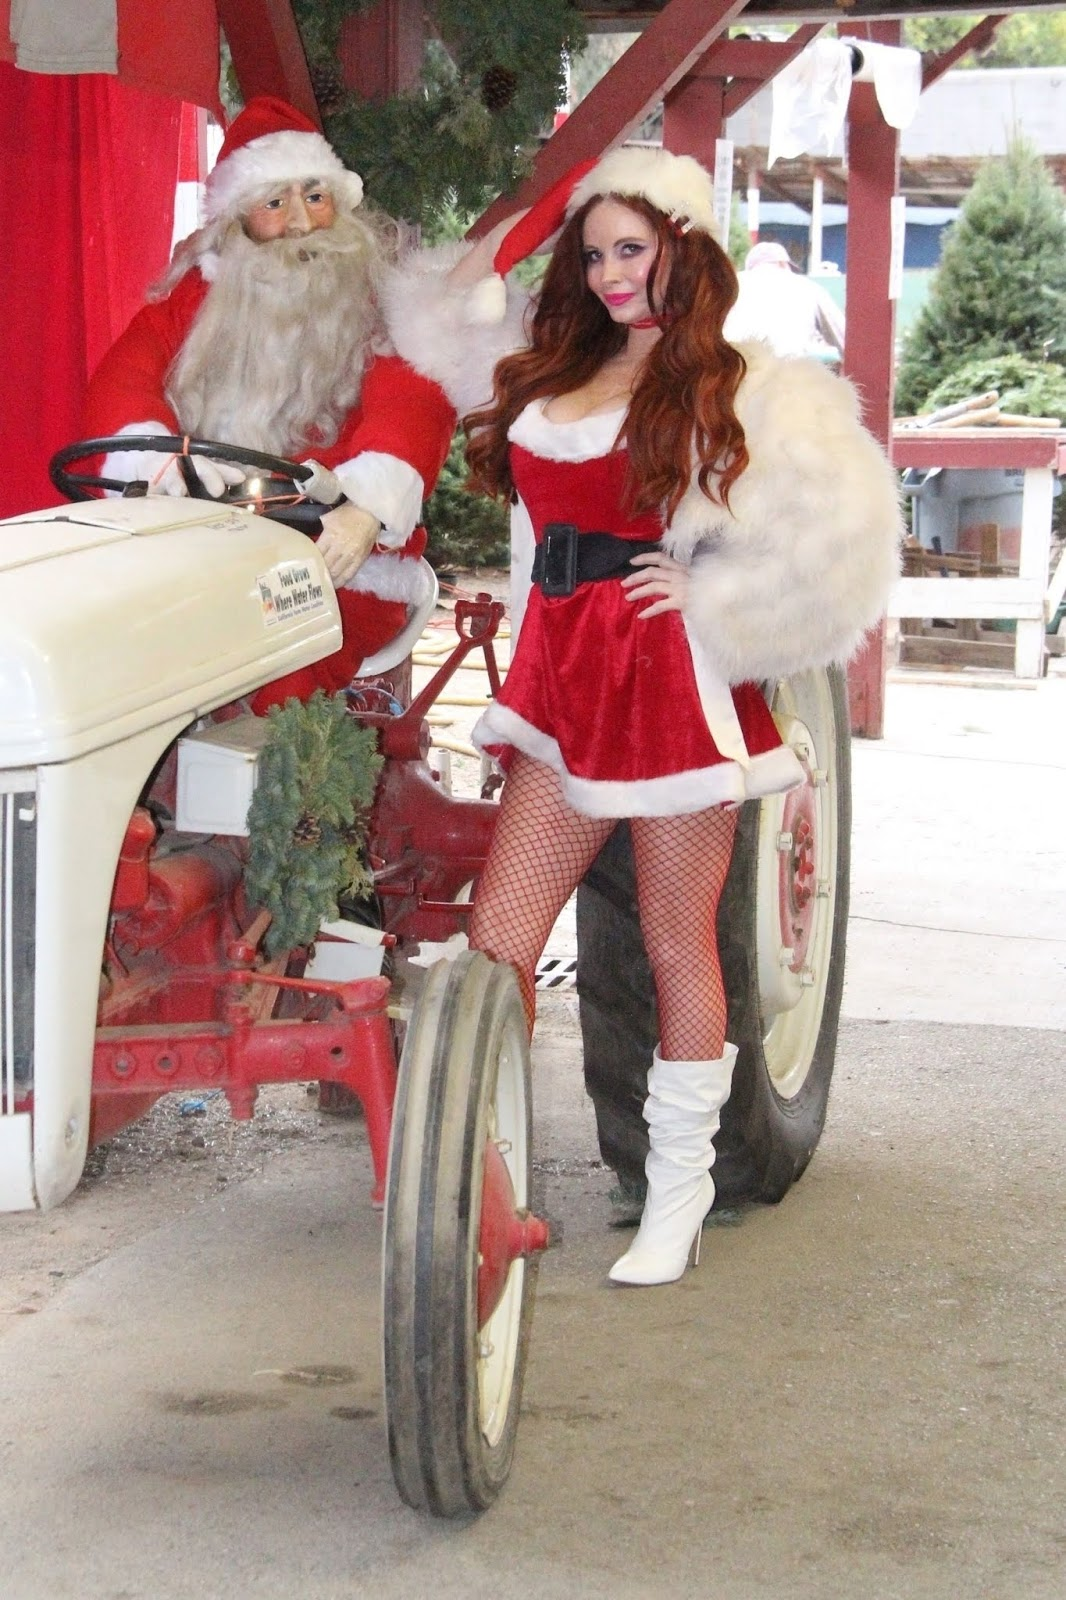 Phoebe Price gets in the Holiday spirit as she dresses up like Santa at a Christmas Tree farm 12/14/2018